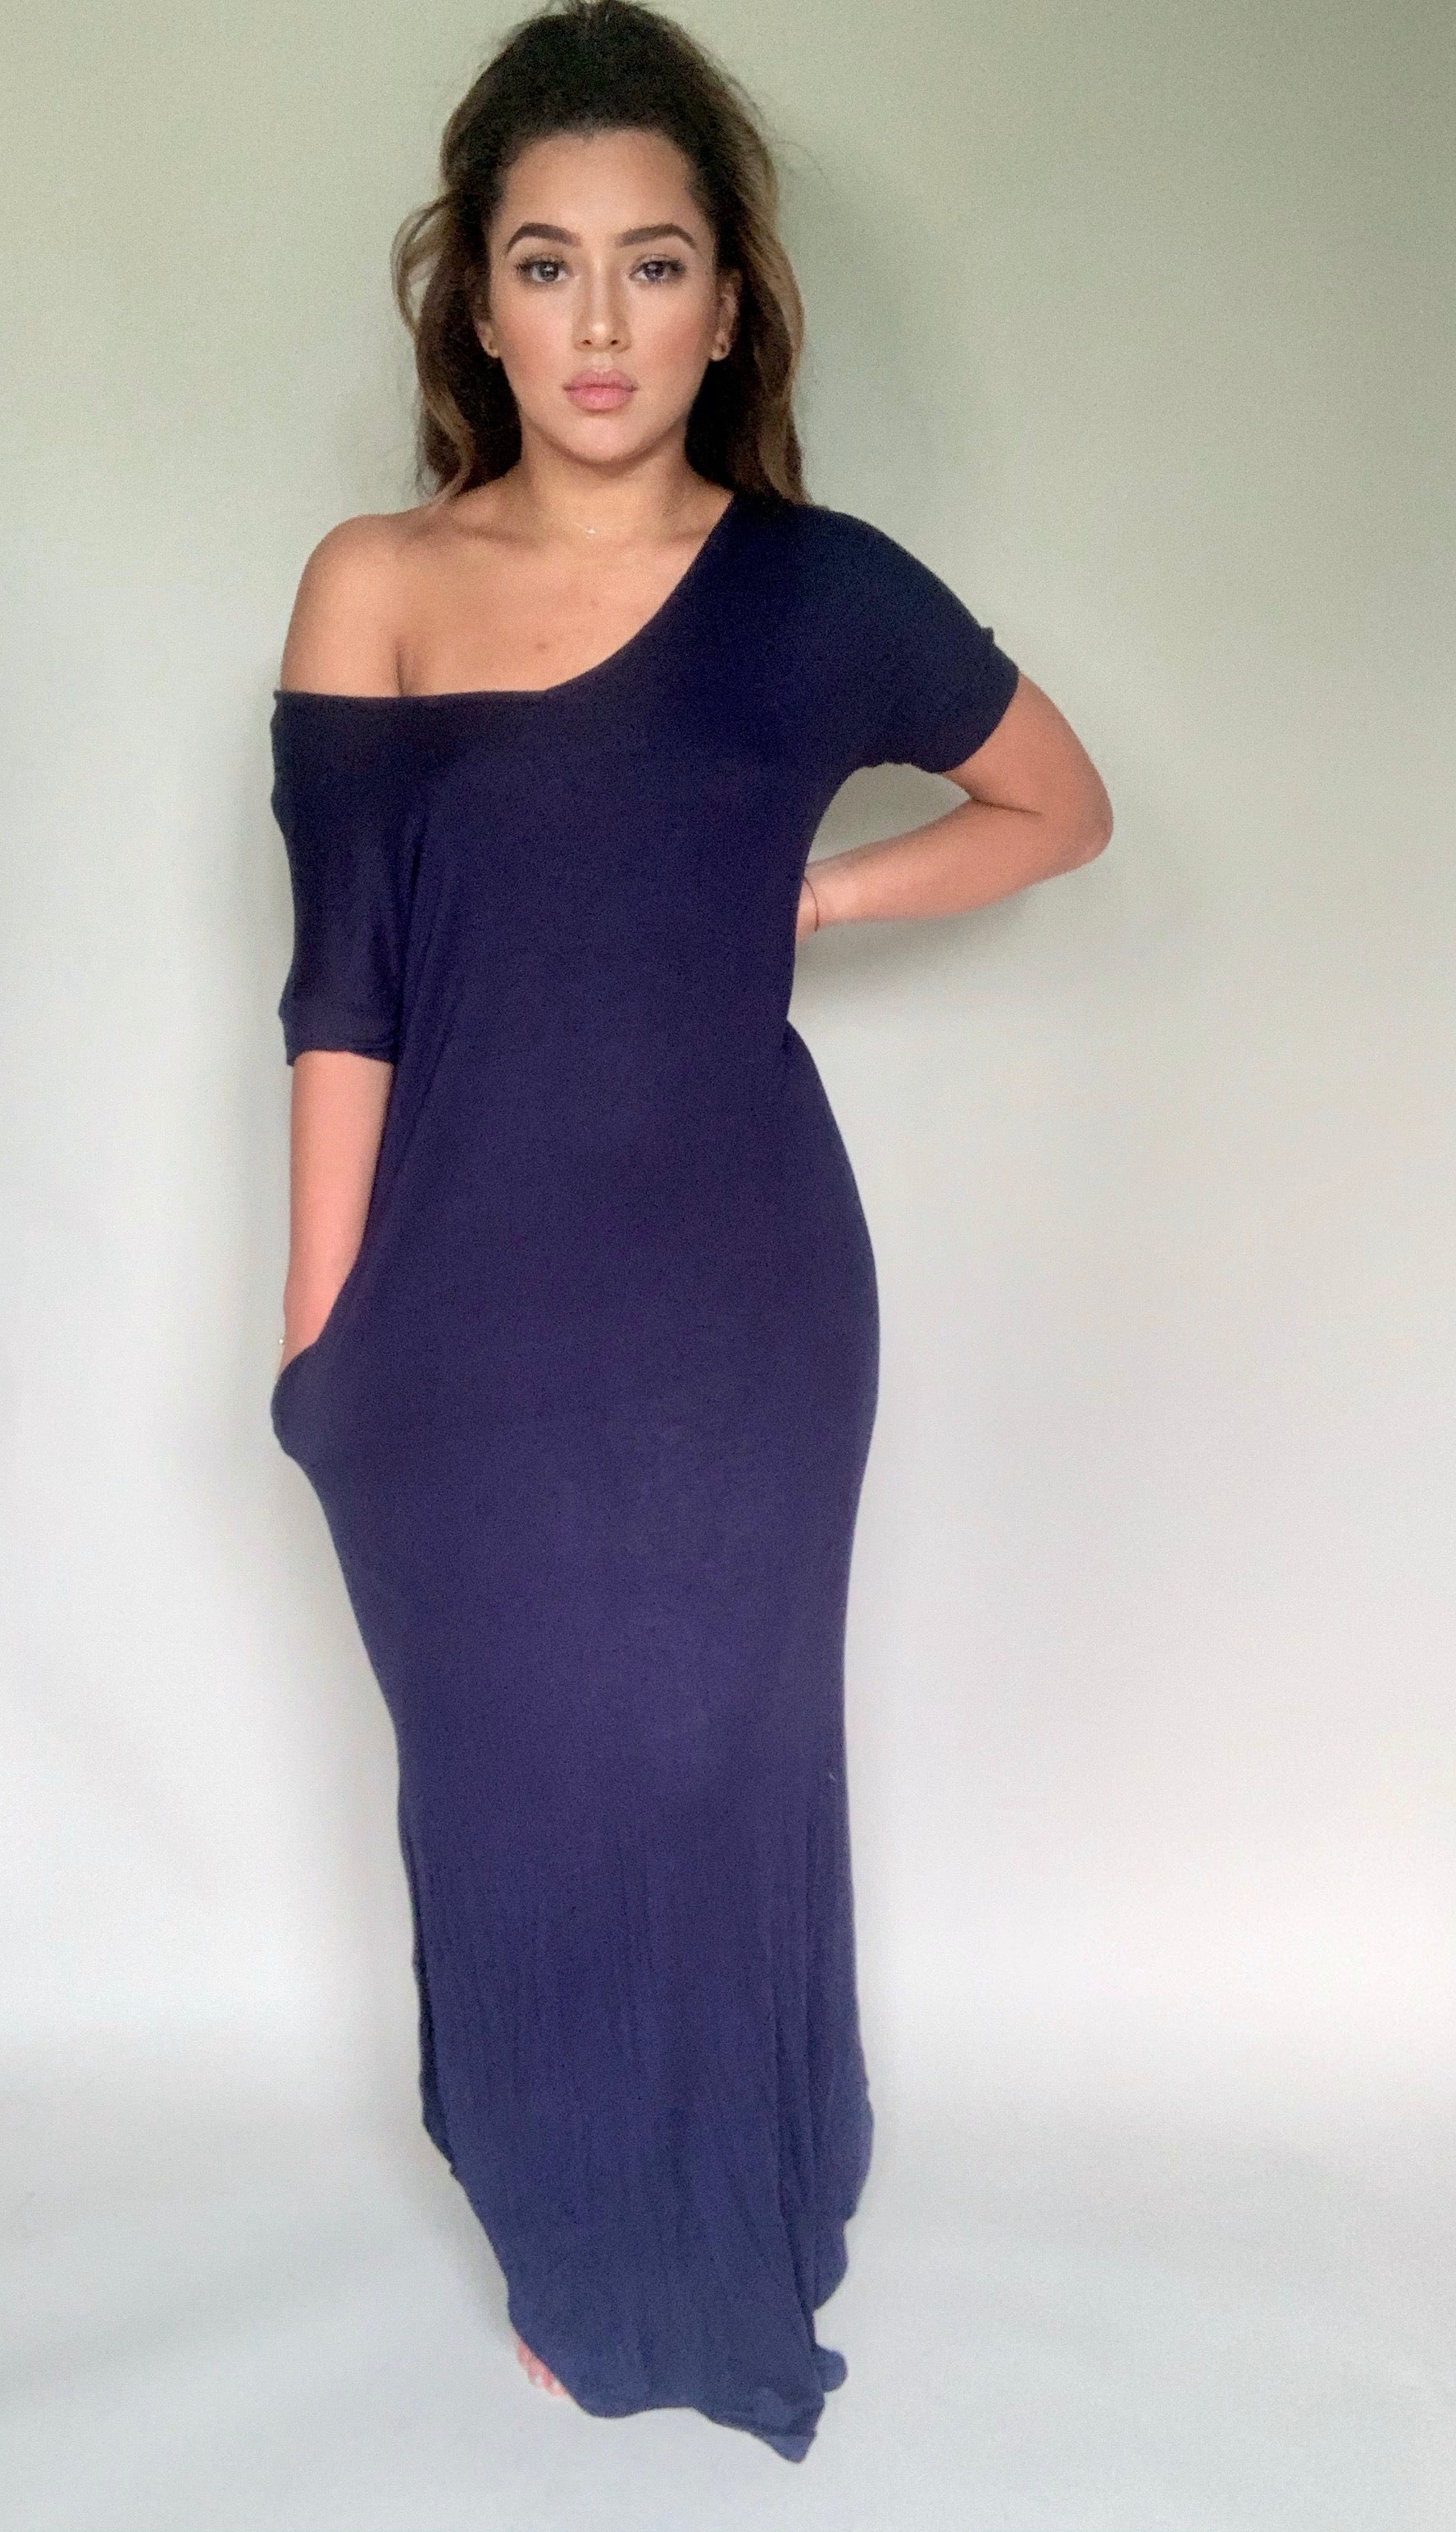 Take Me Away Maxi Dress - Navy